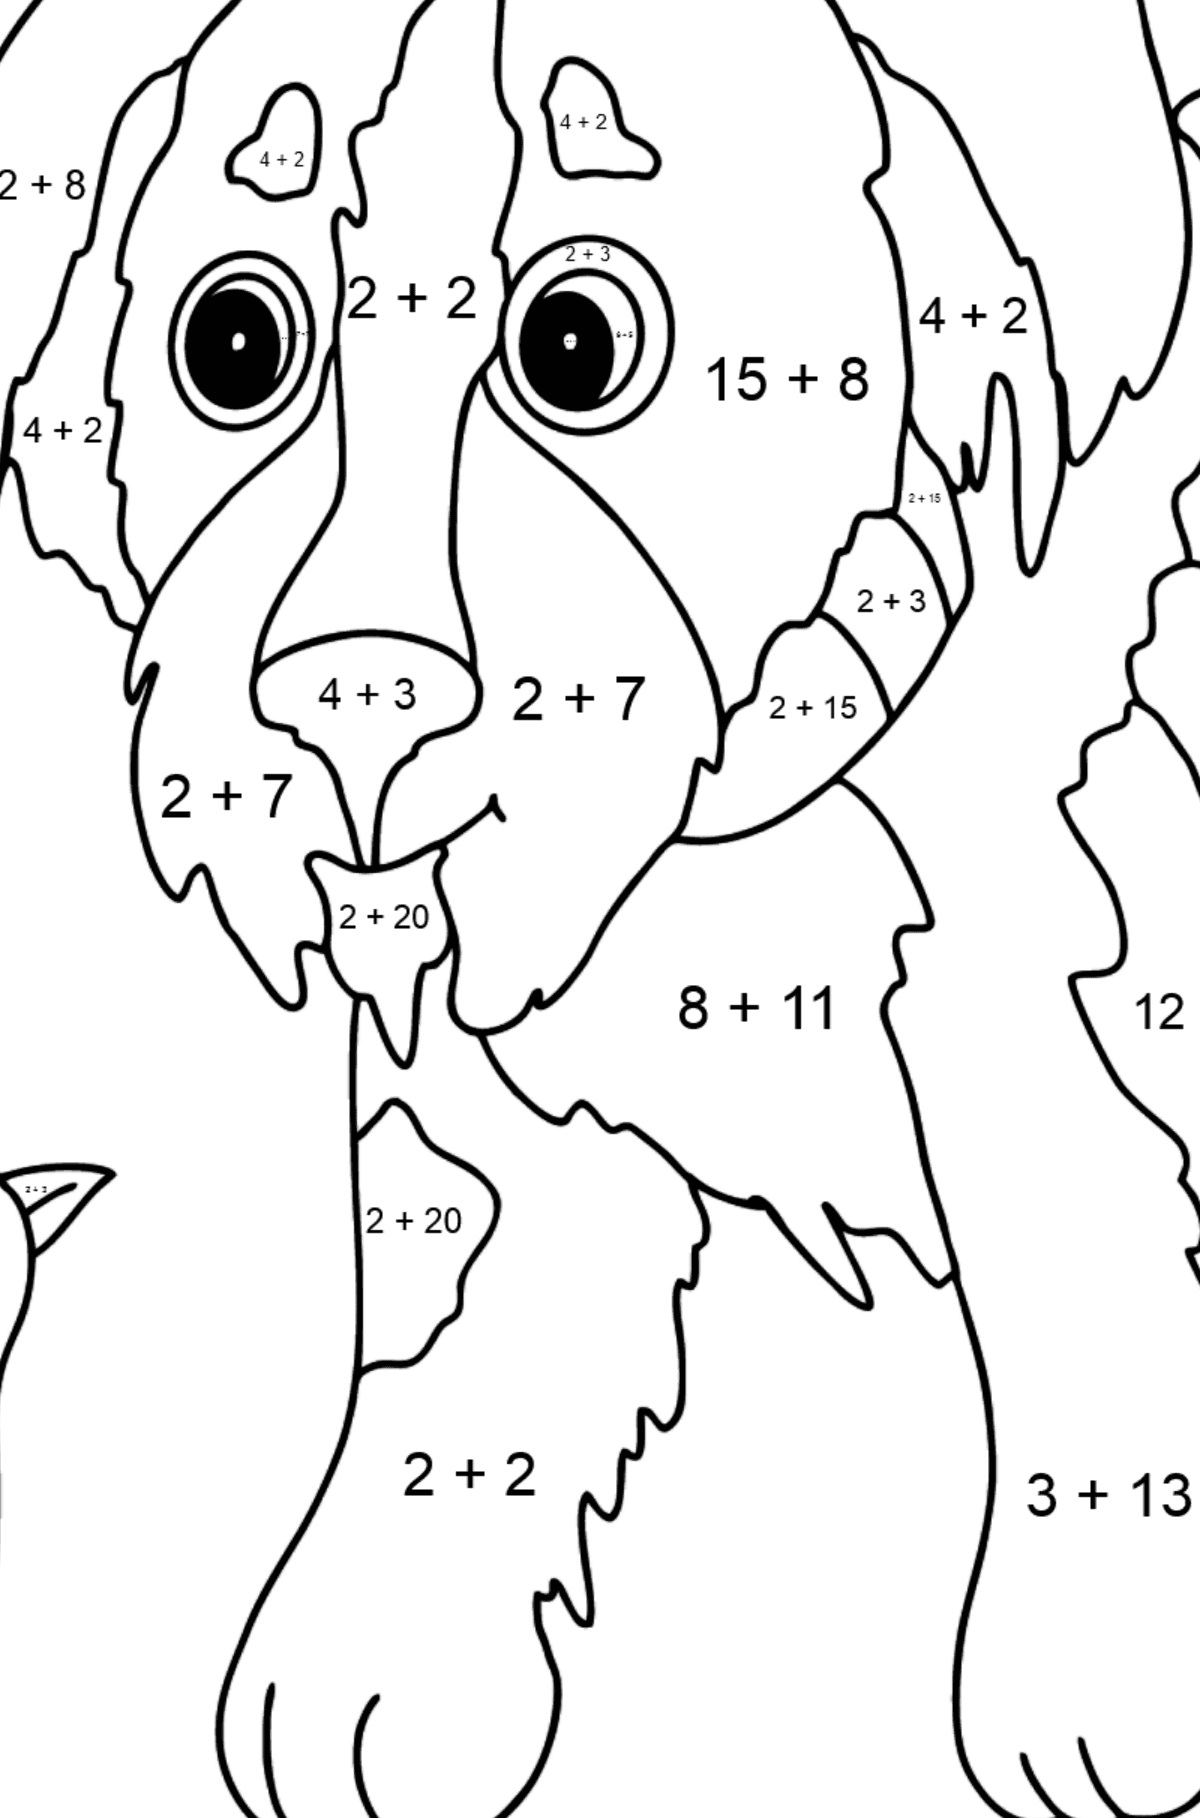 Coloring Page - A Dog is Playing with a Bird - Math Coloring - Addition for Kids